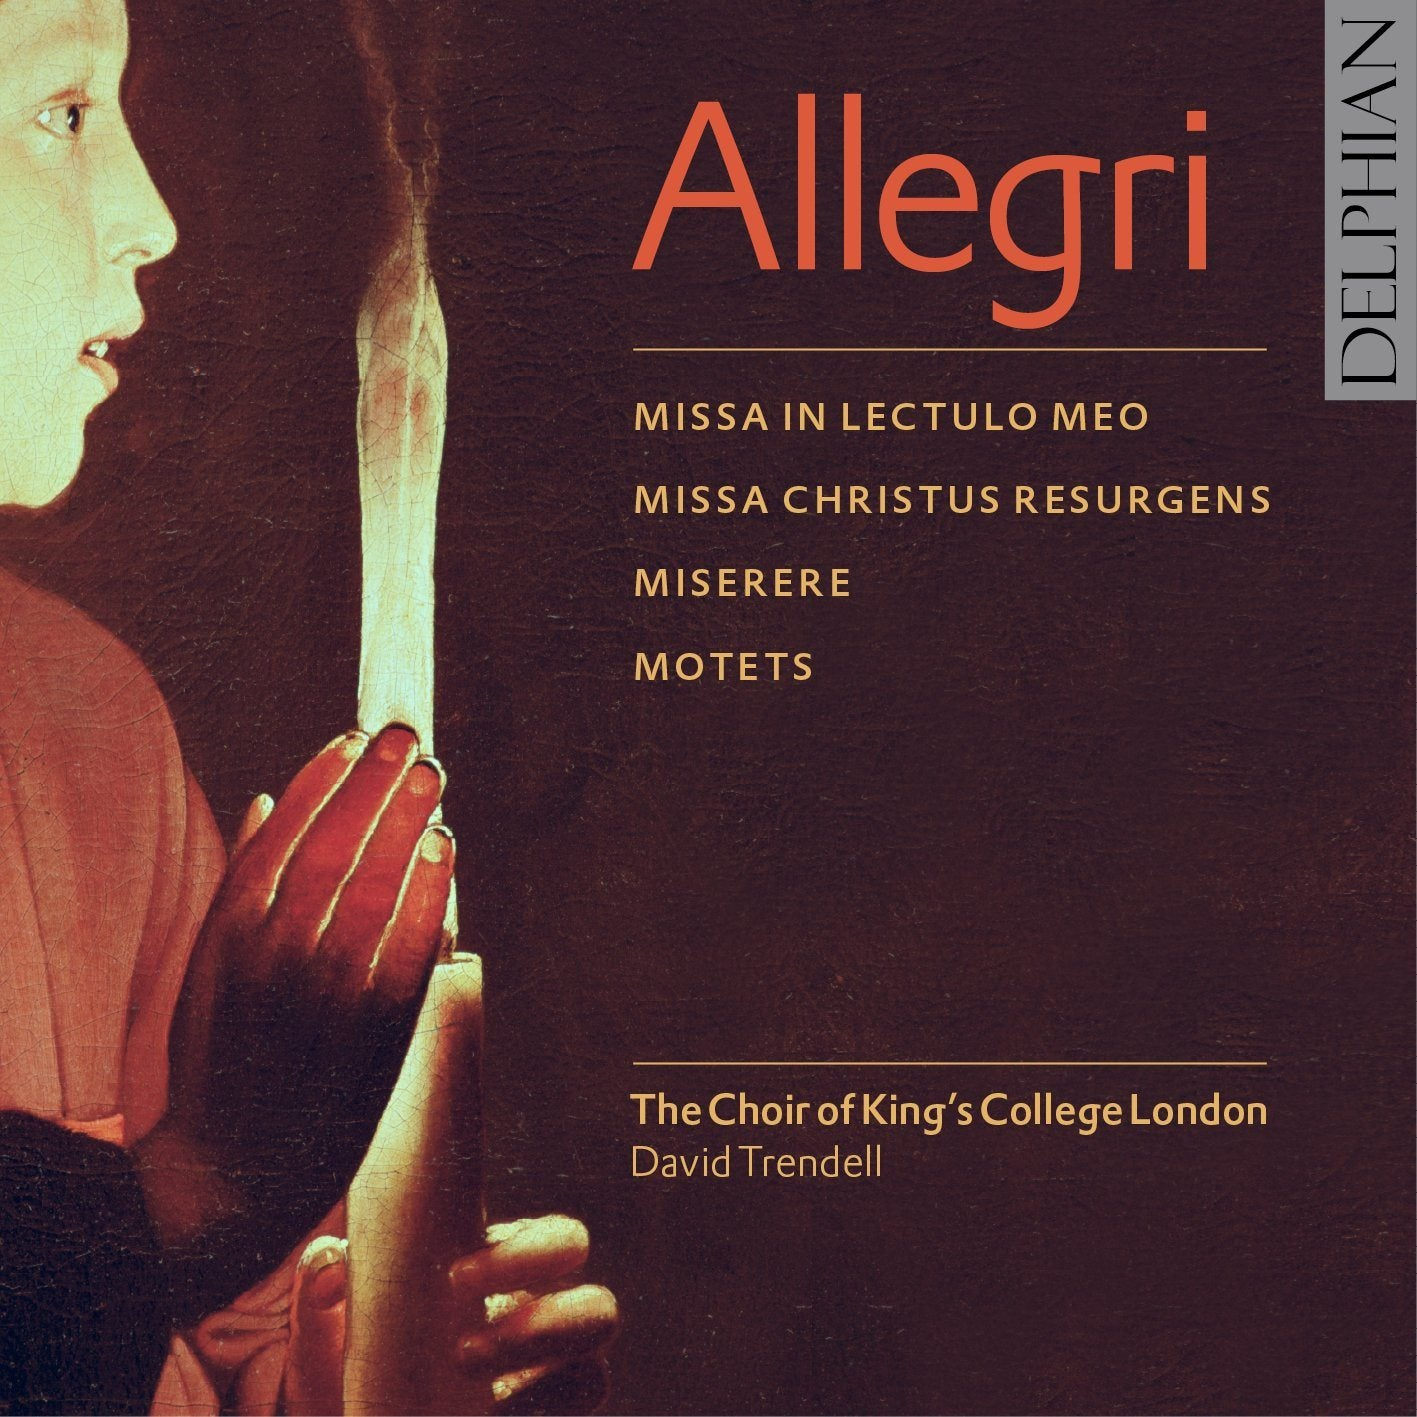 Allegri: Miserere; Masses & Motets CD Delphian Records